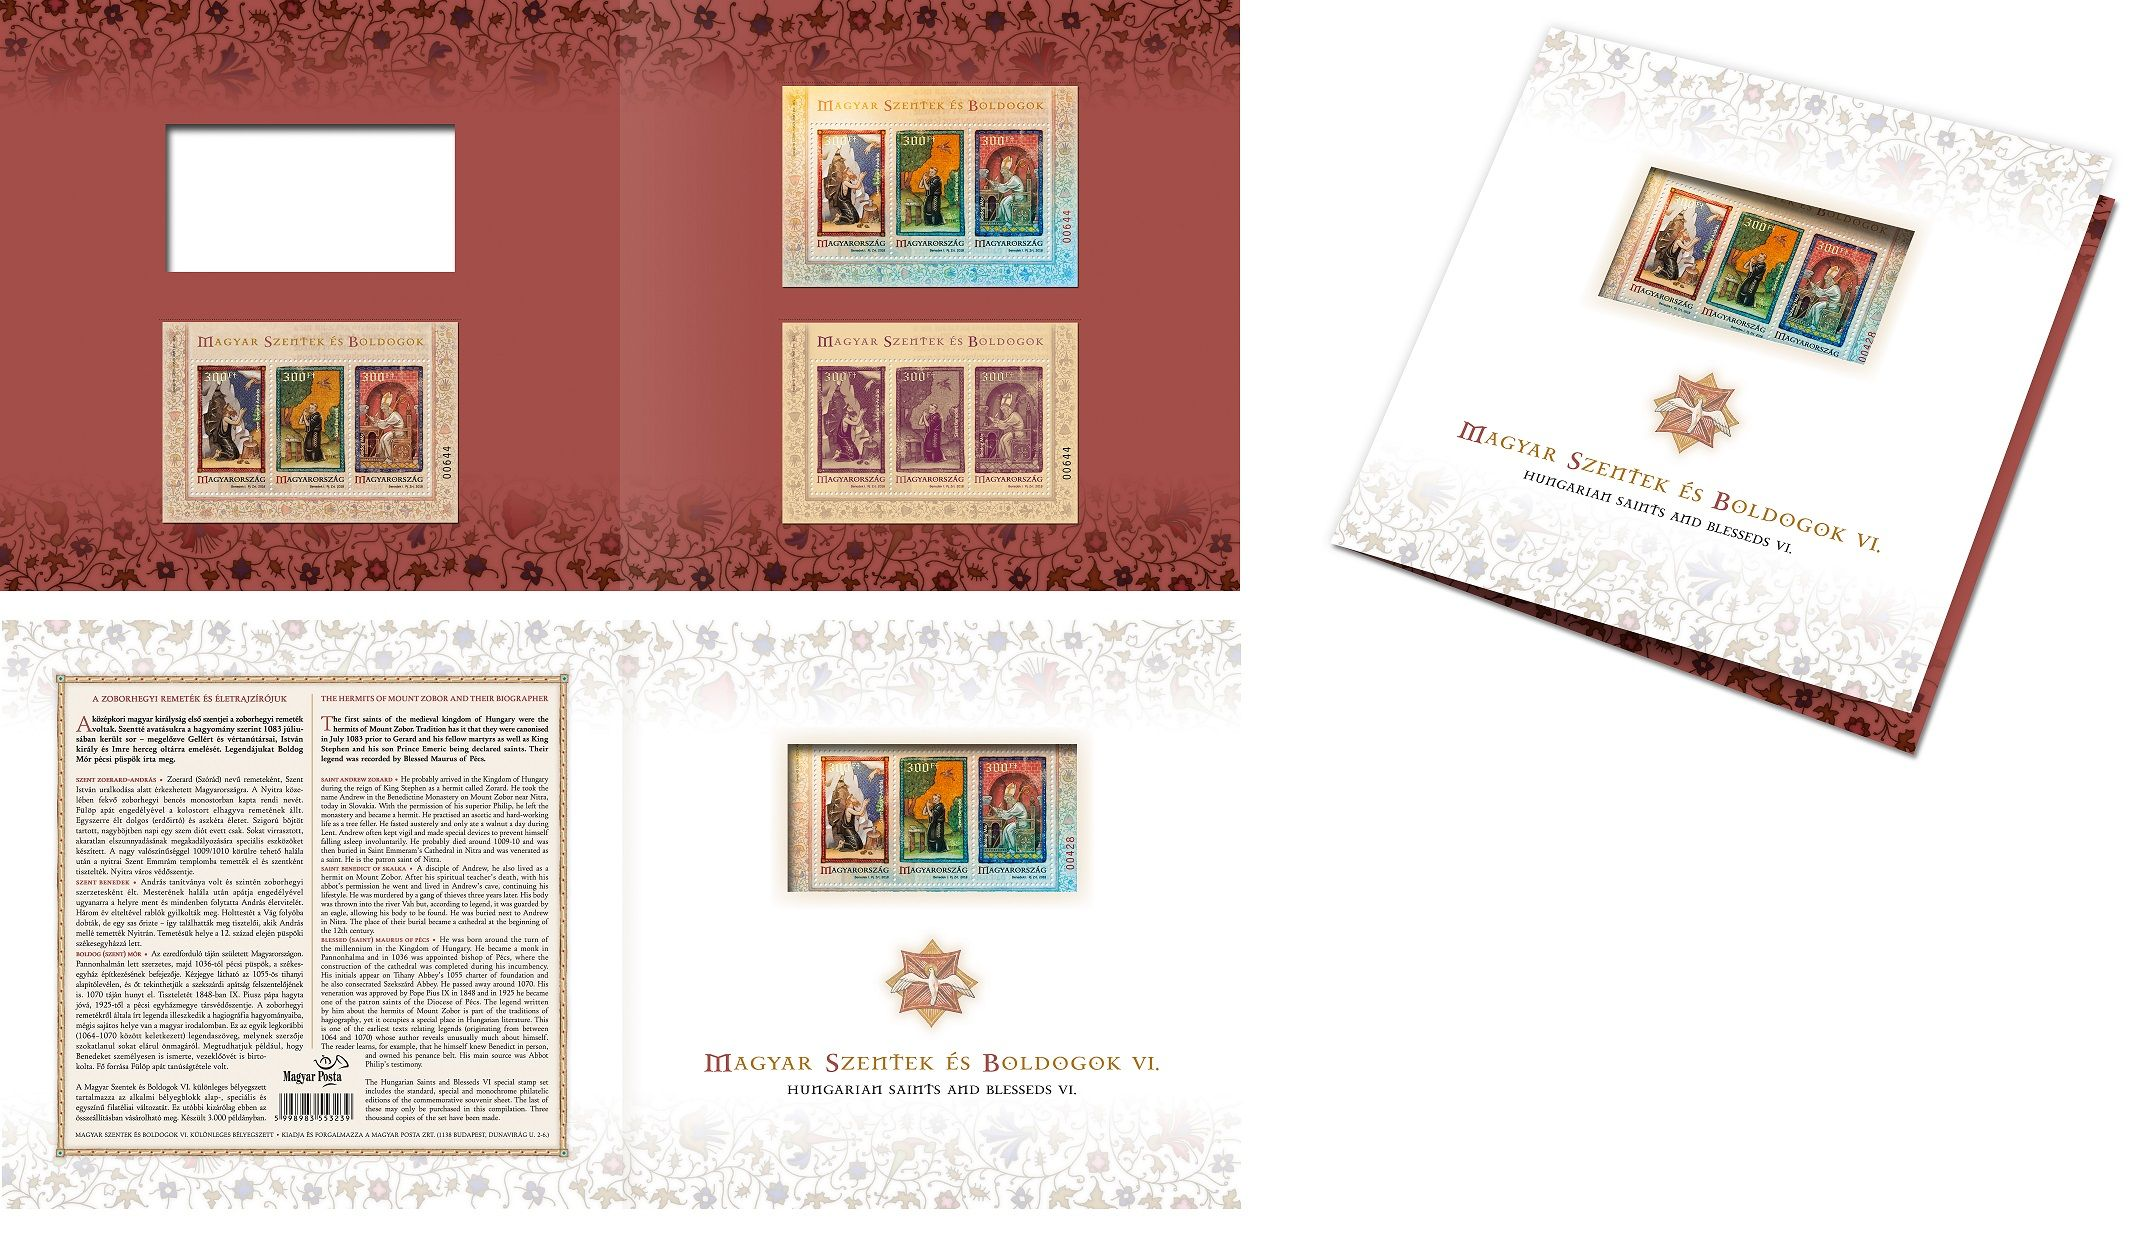 Hungarian saints and blesseds VI stamp set